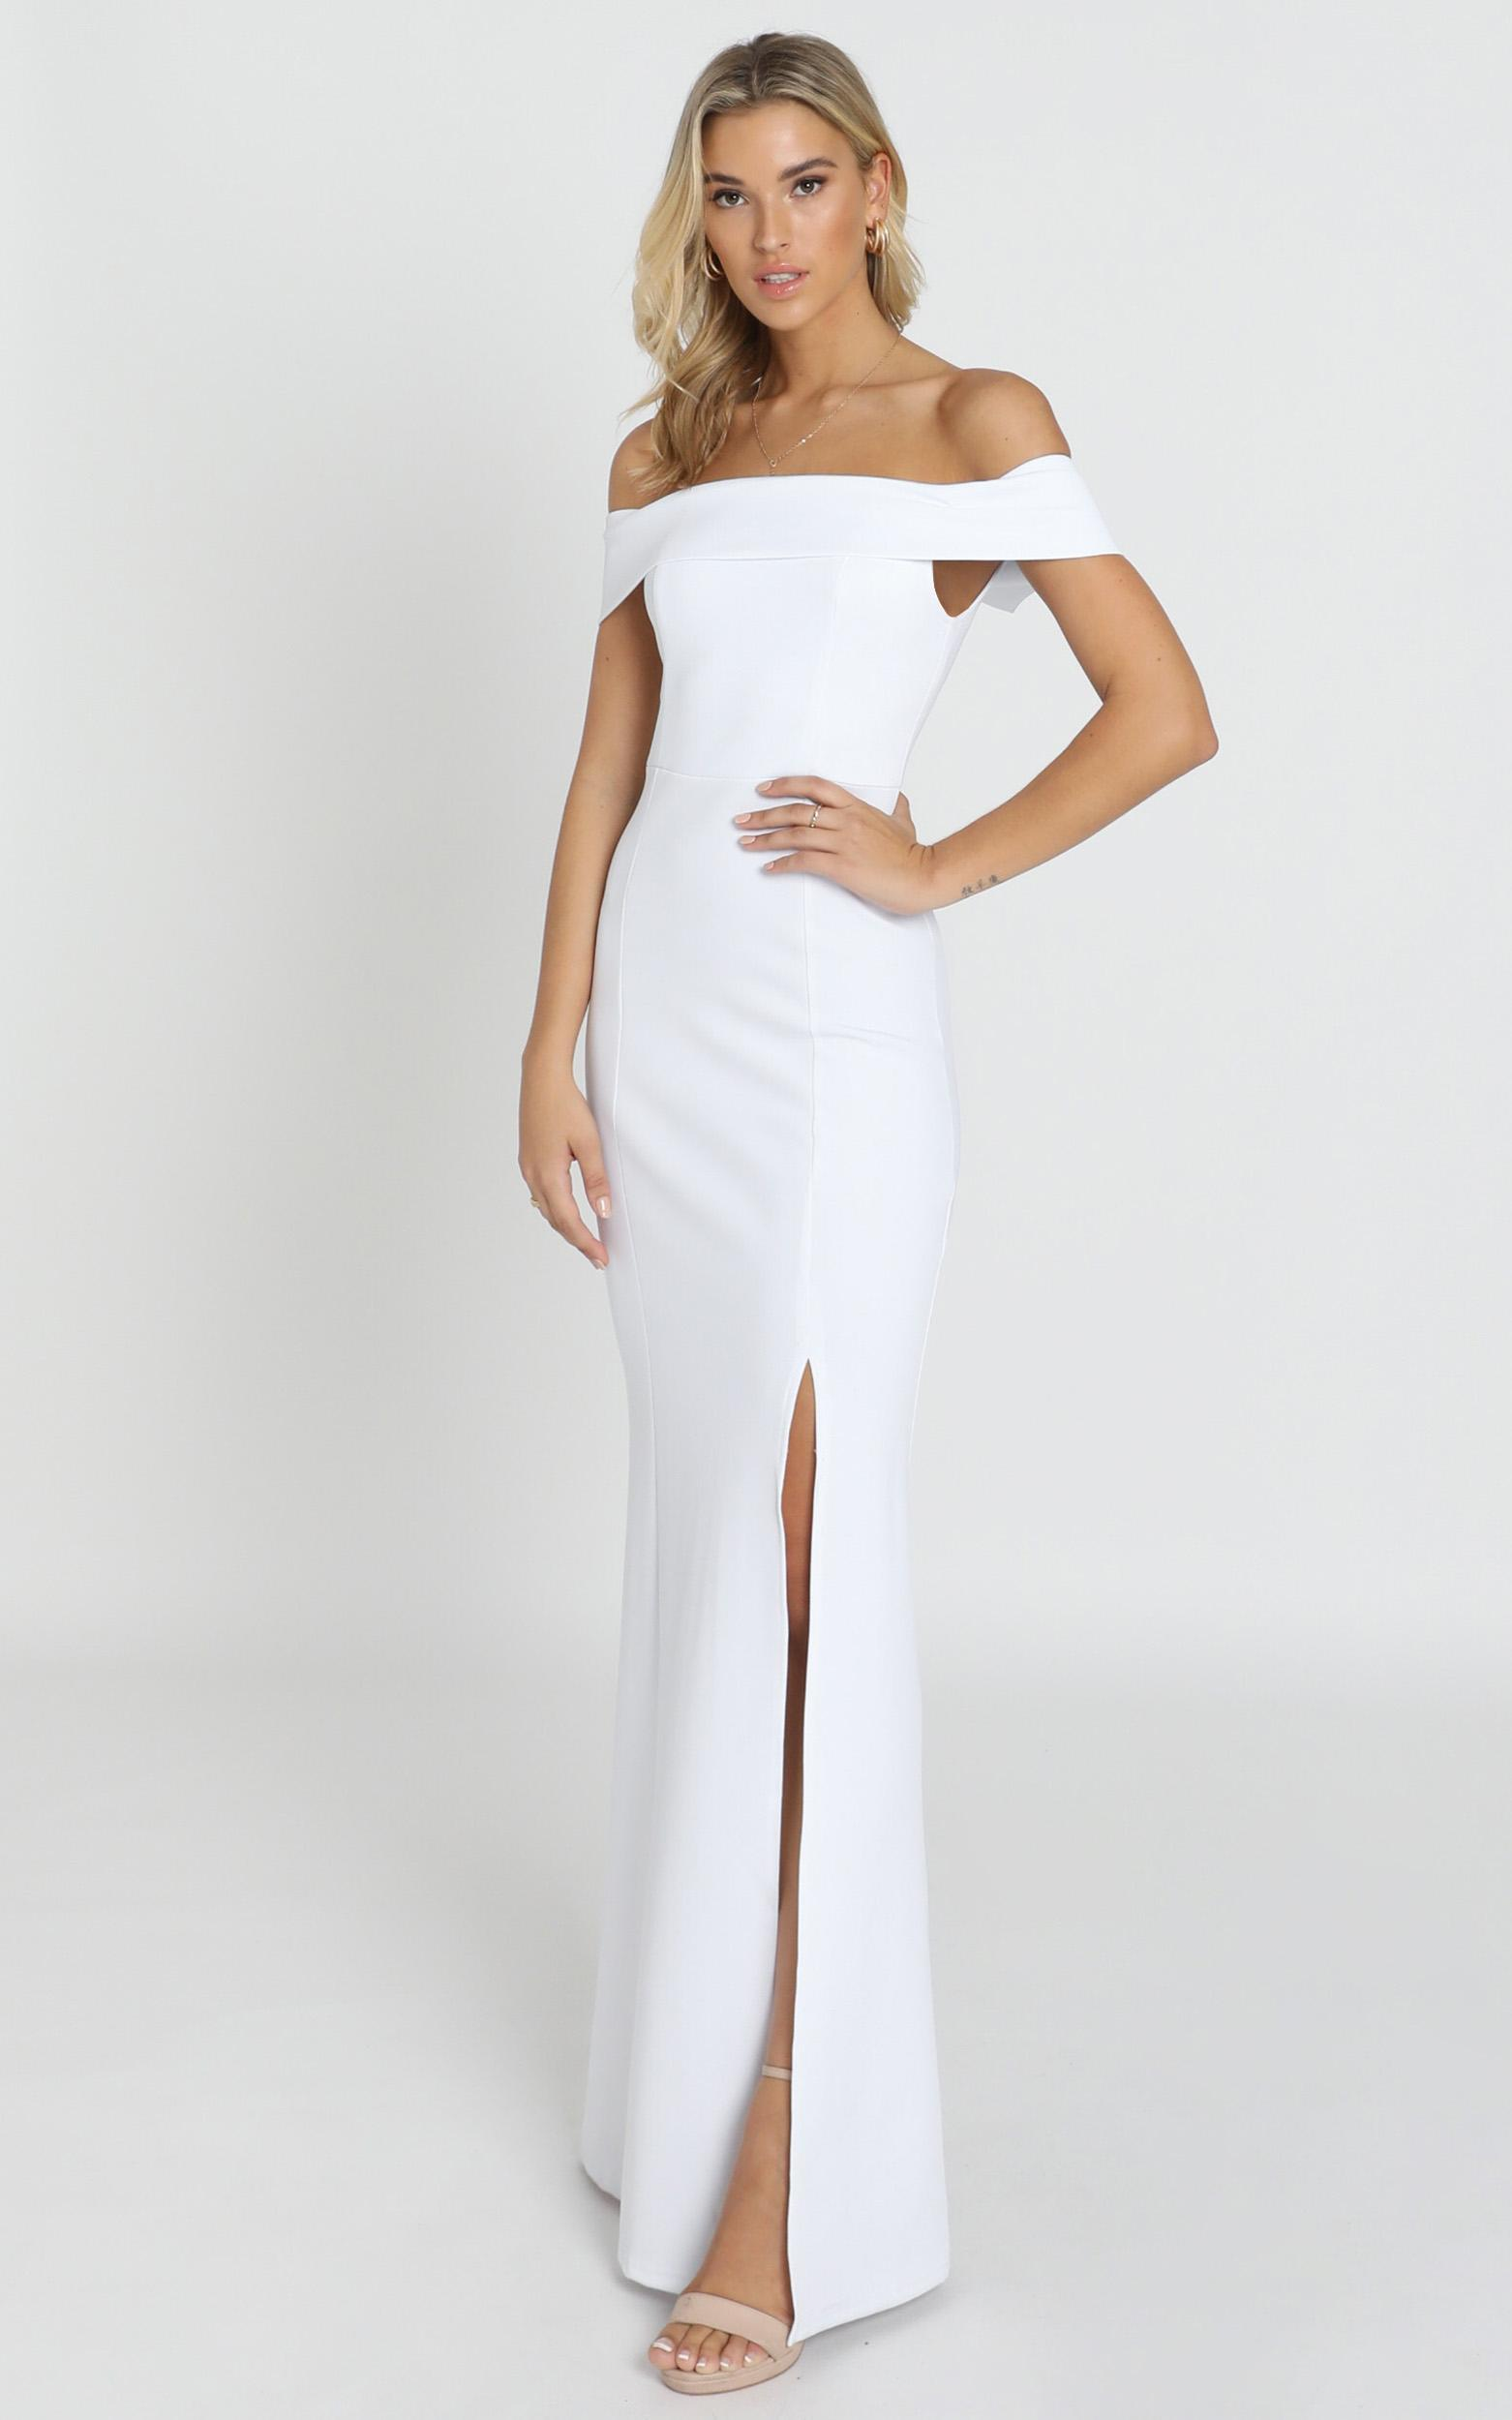 We Got This Feeling Dress in white - 14 (XL), White, hi-res image number null